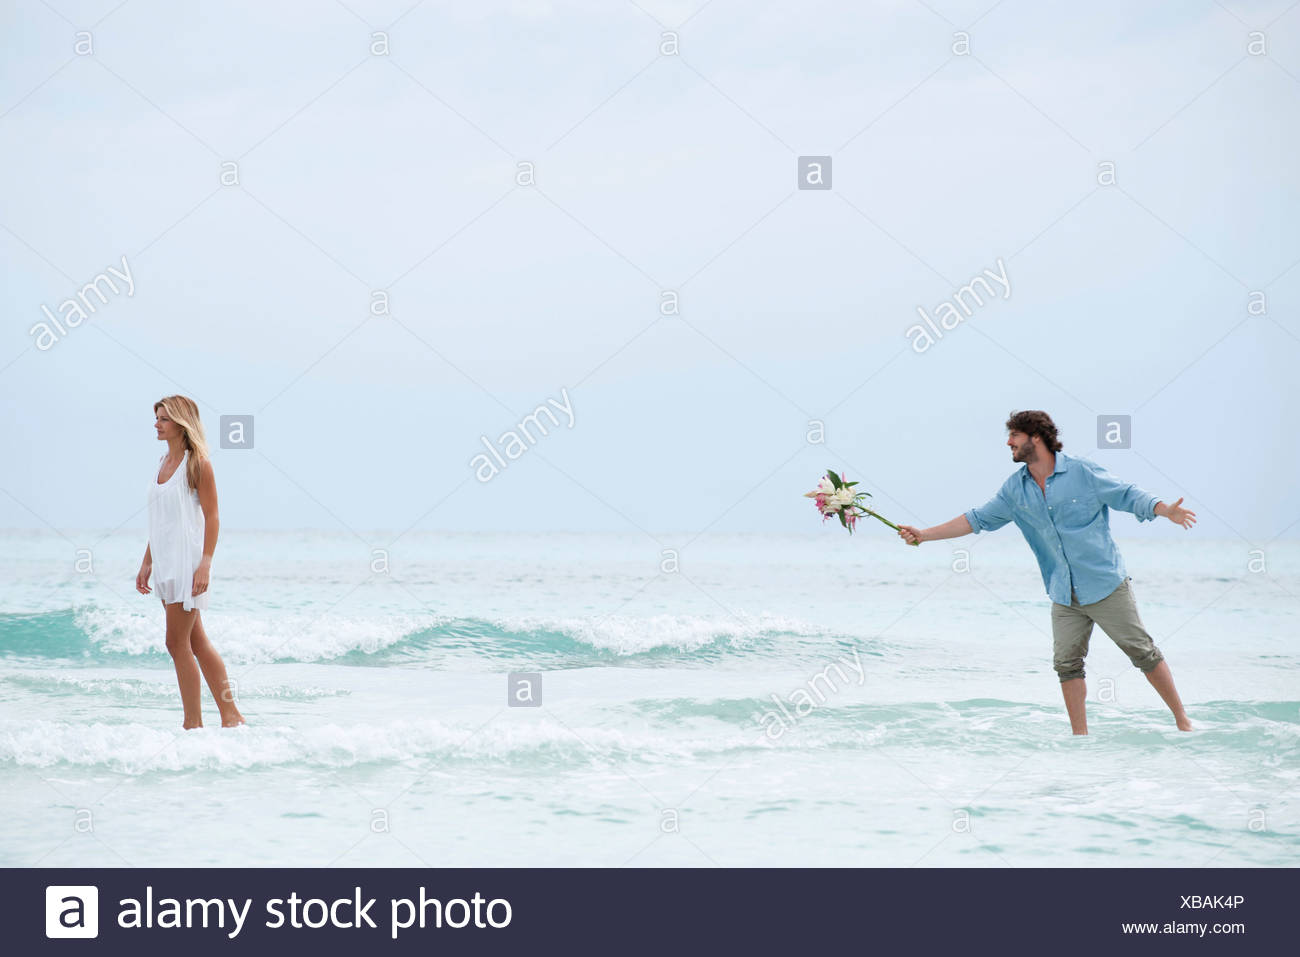 Couple standing in sea, woman walking away from man as he holds out a bouquet - Stock Image